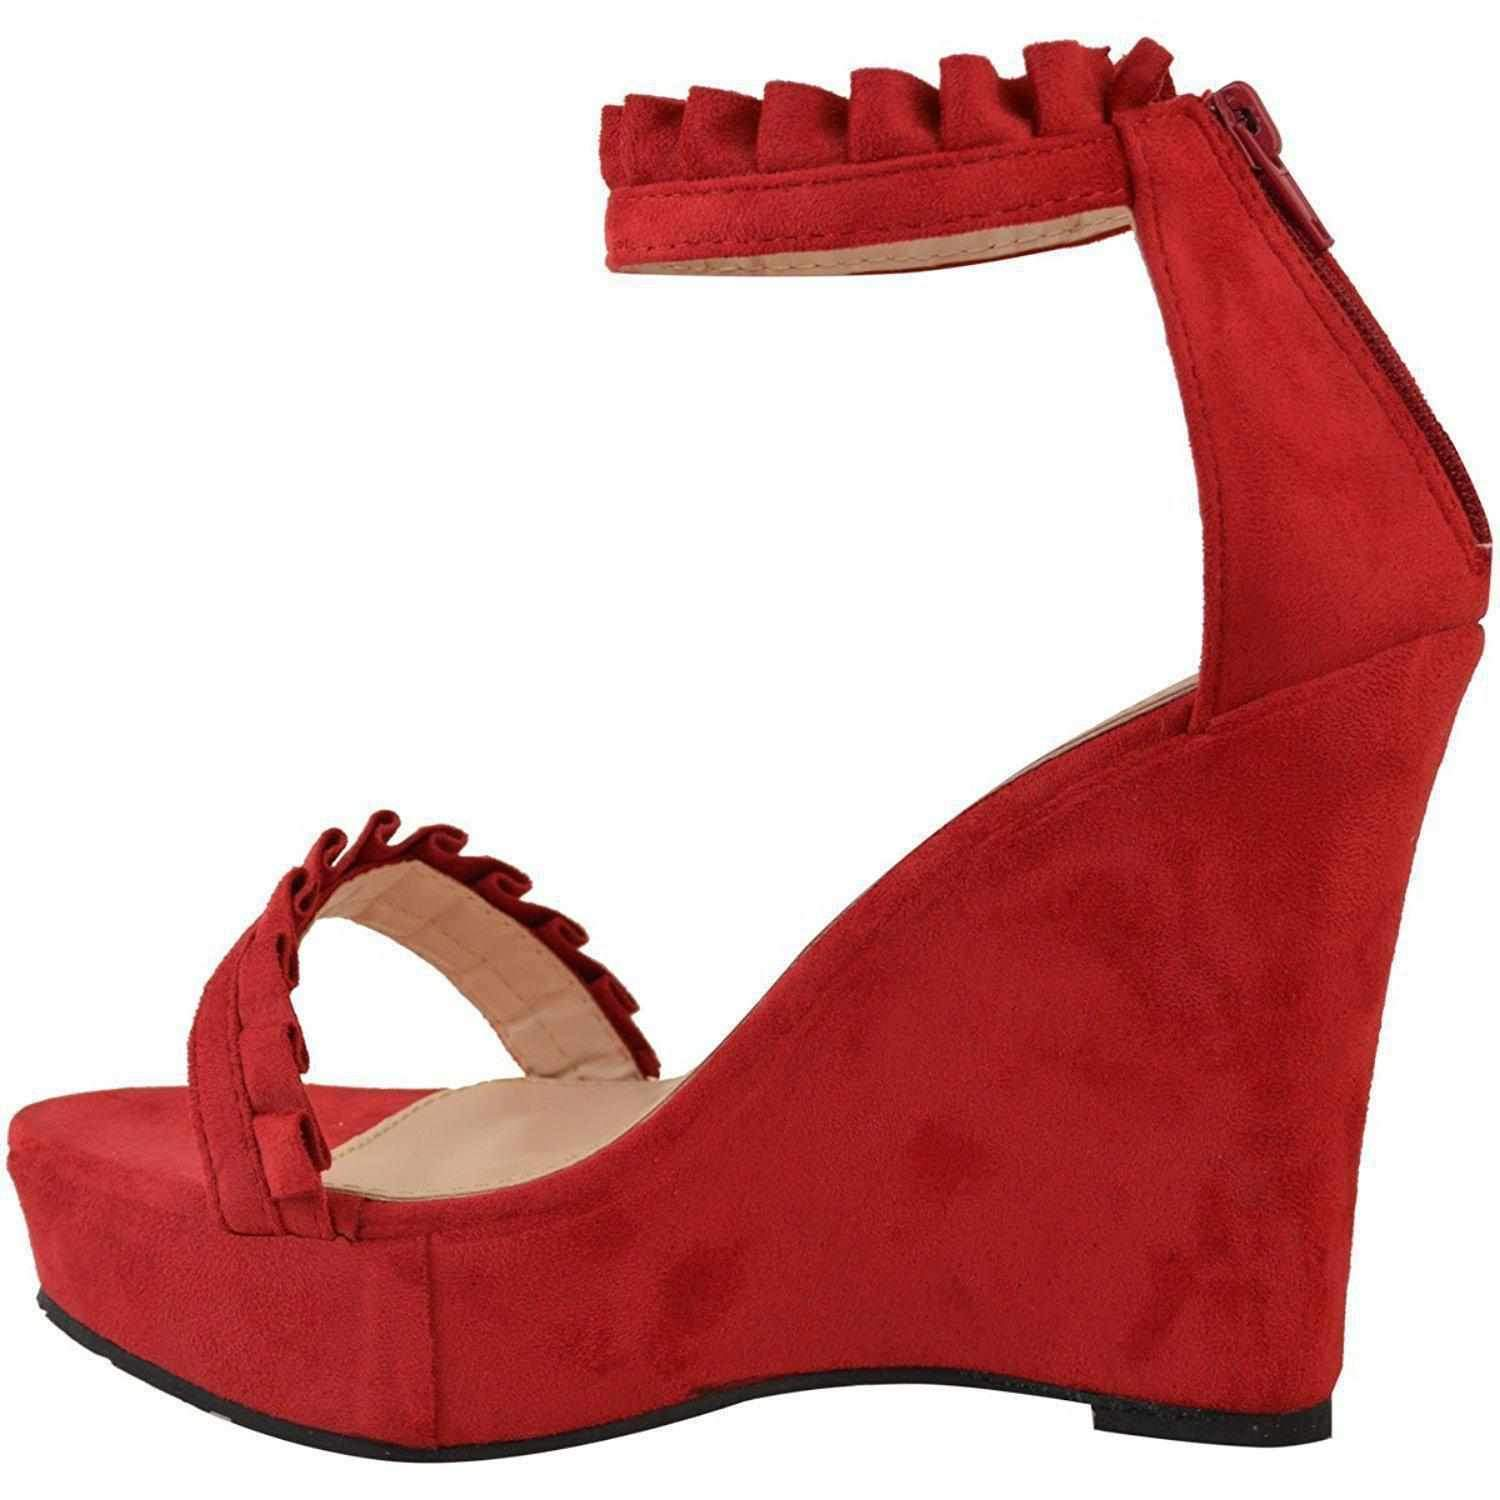 e7a9724d6b9a Sexy Red Faux Suede Ruffled High Heel Platform Wedge Wedding Sandals Wedges  Edgy Couture